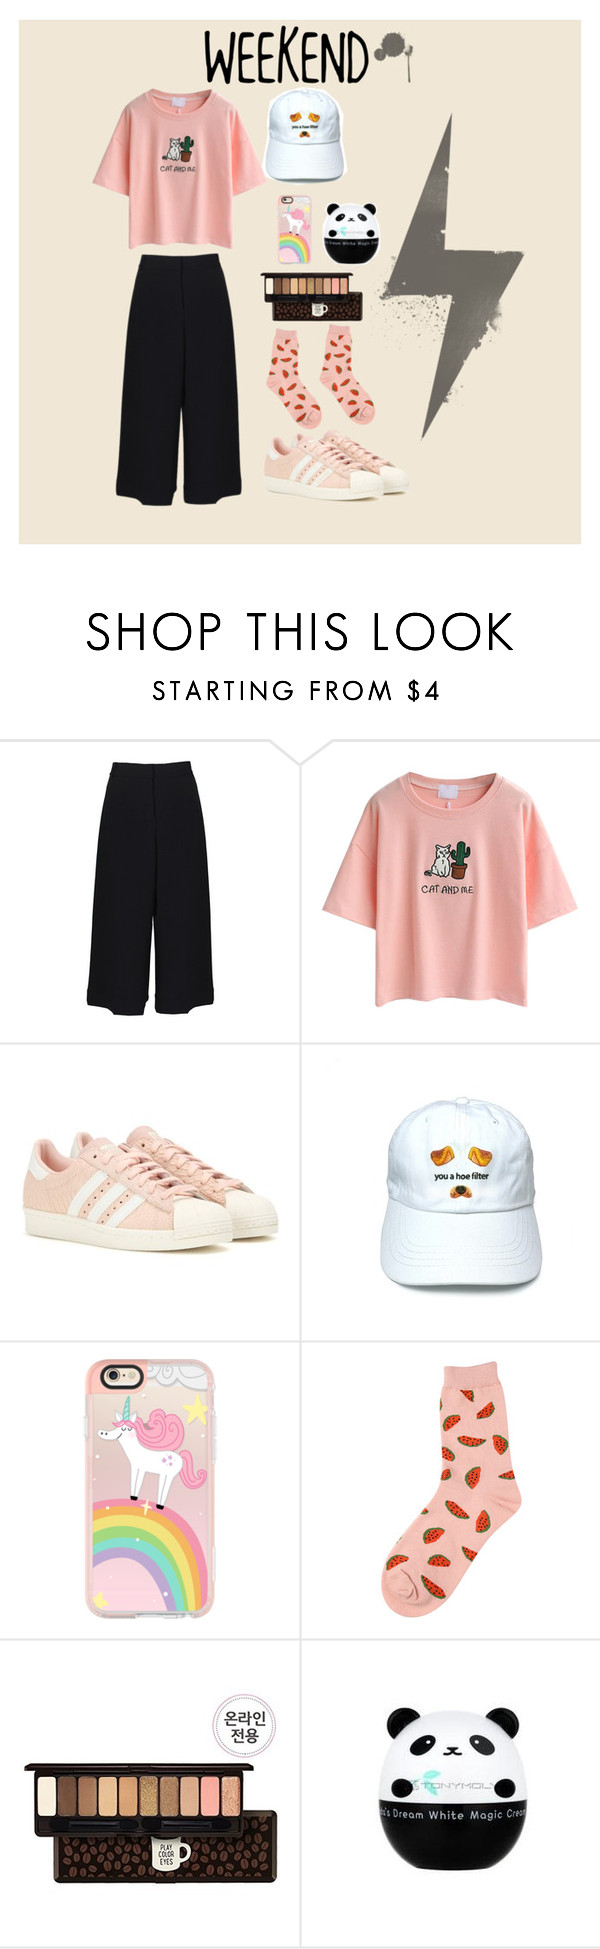 """WEEKEND!!!!!!!!!!!"" by gkemy on Polyvore featuring TIBI, WithChic, adidas, Casetify, Chicnova Fashion, Etude House and Tony Moly"